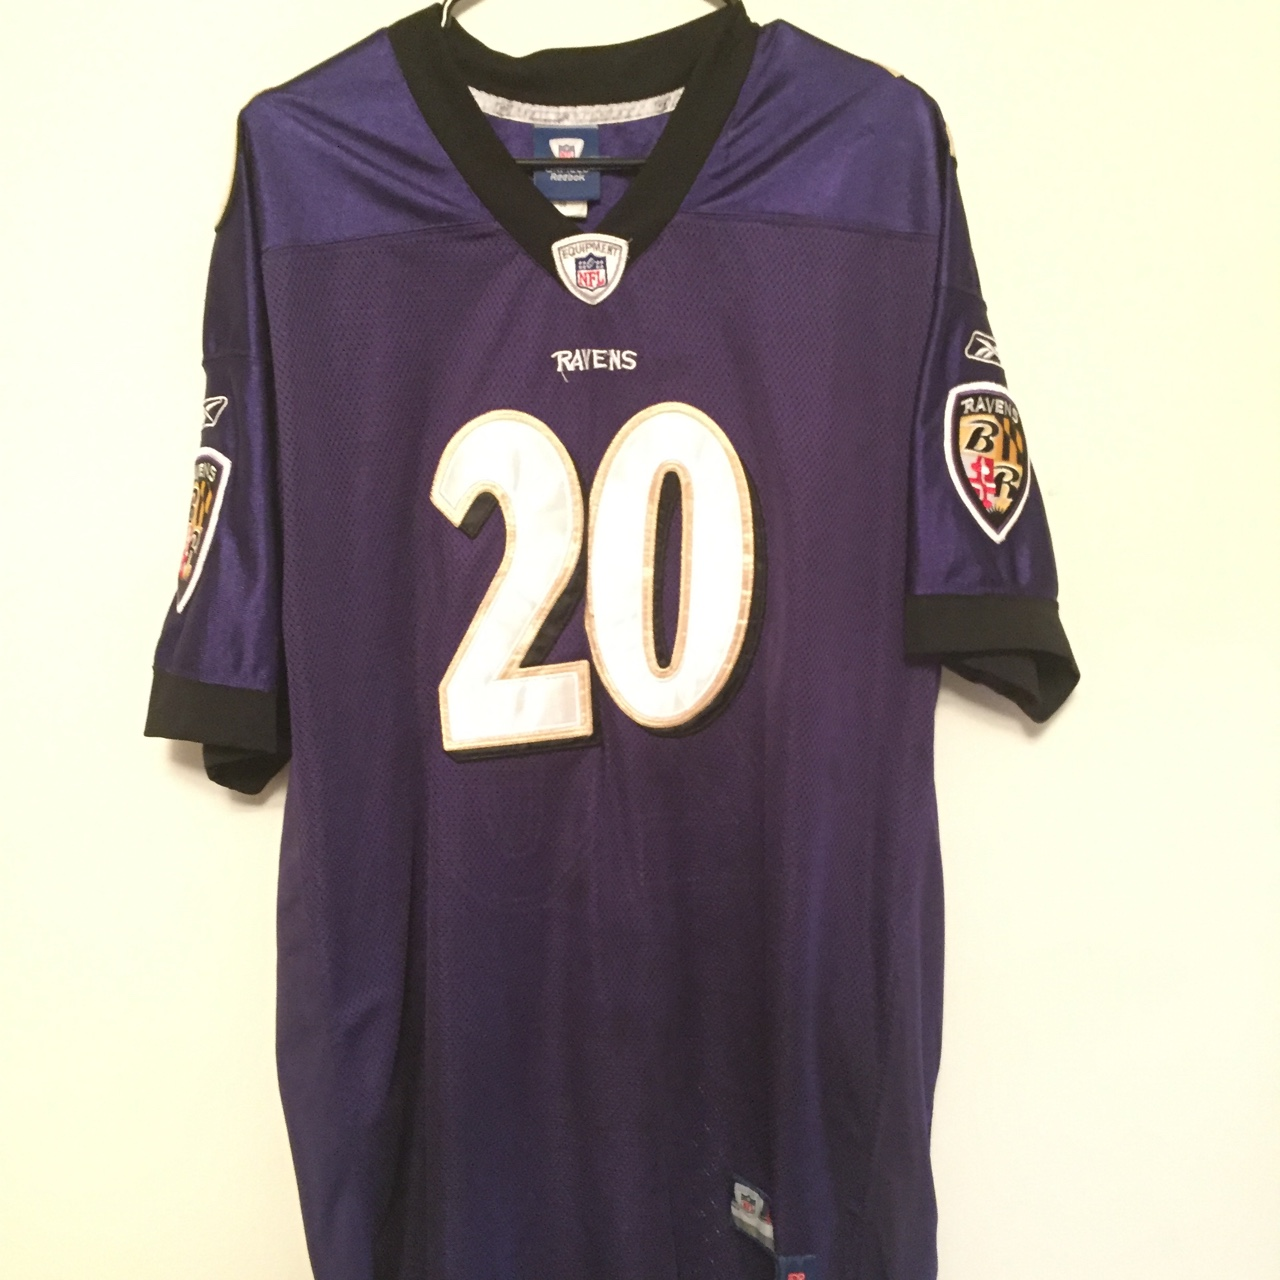 free shipping cb4f3 bc623 Authentic Ed Reed Baltimore Ravens jersey. Size 54... - Depop